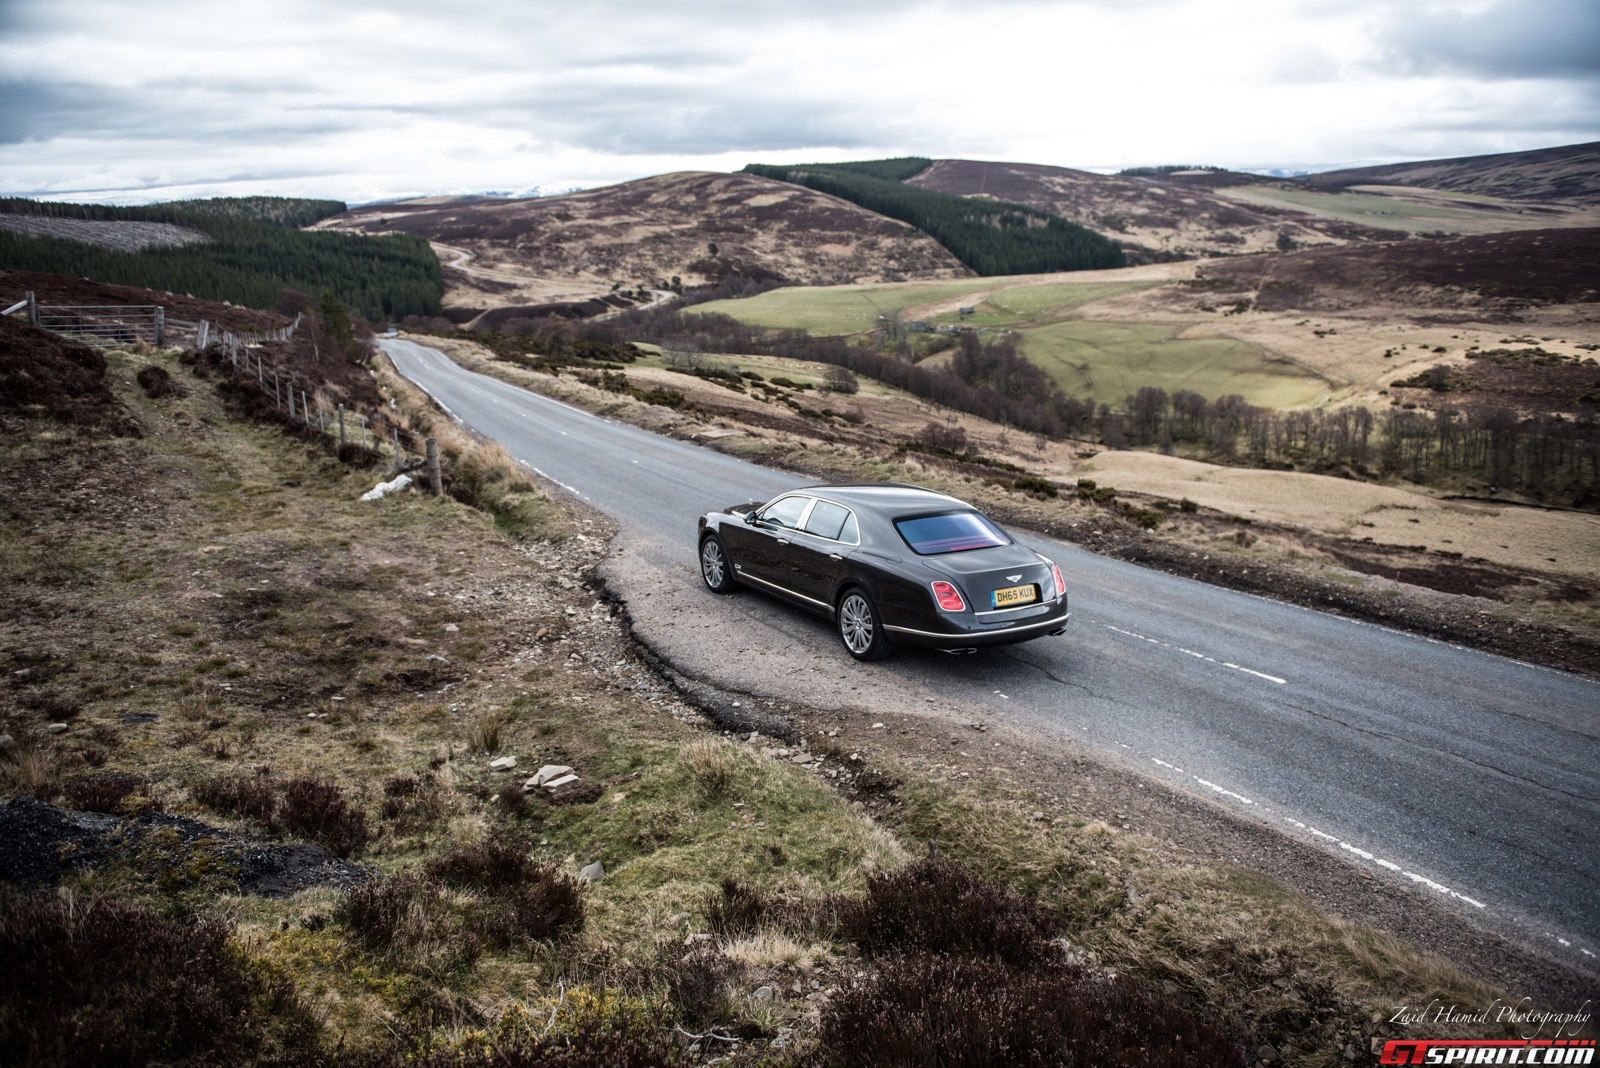 Bentley Mulsanne in the Cairngorms